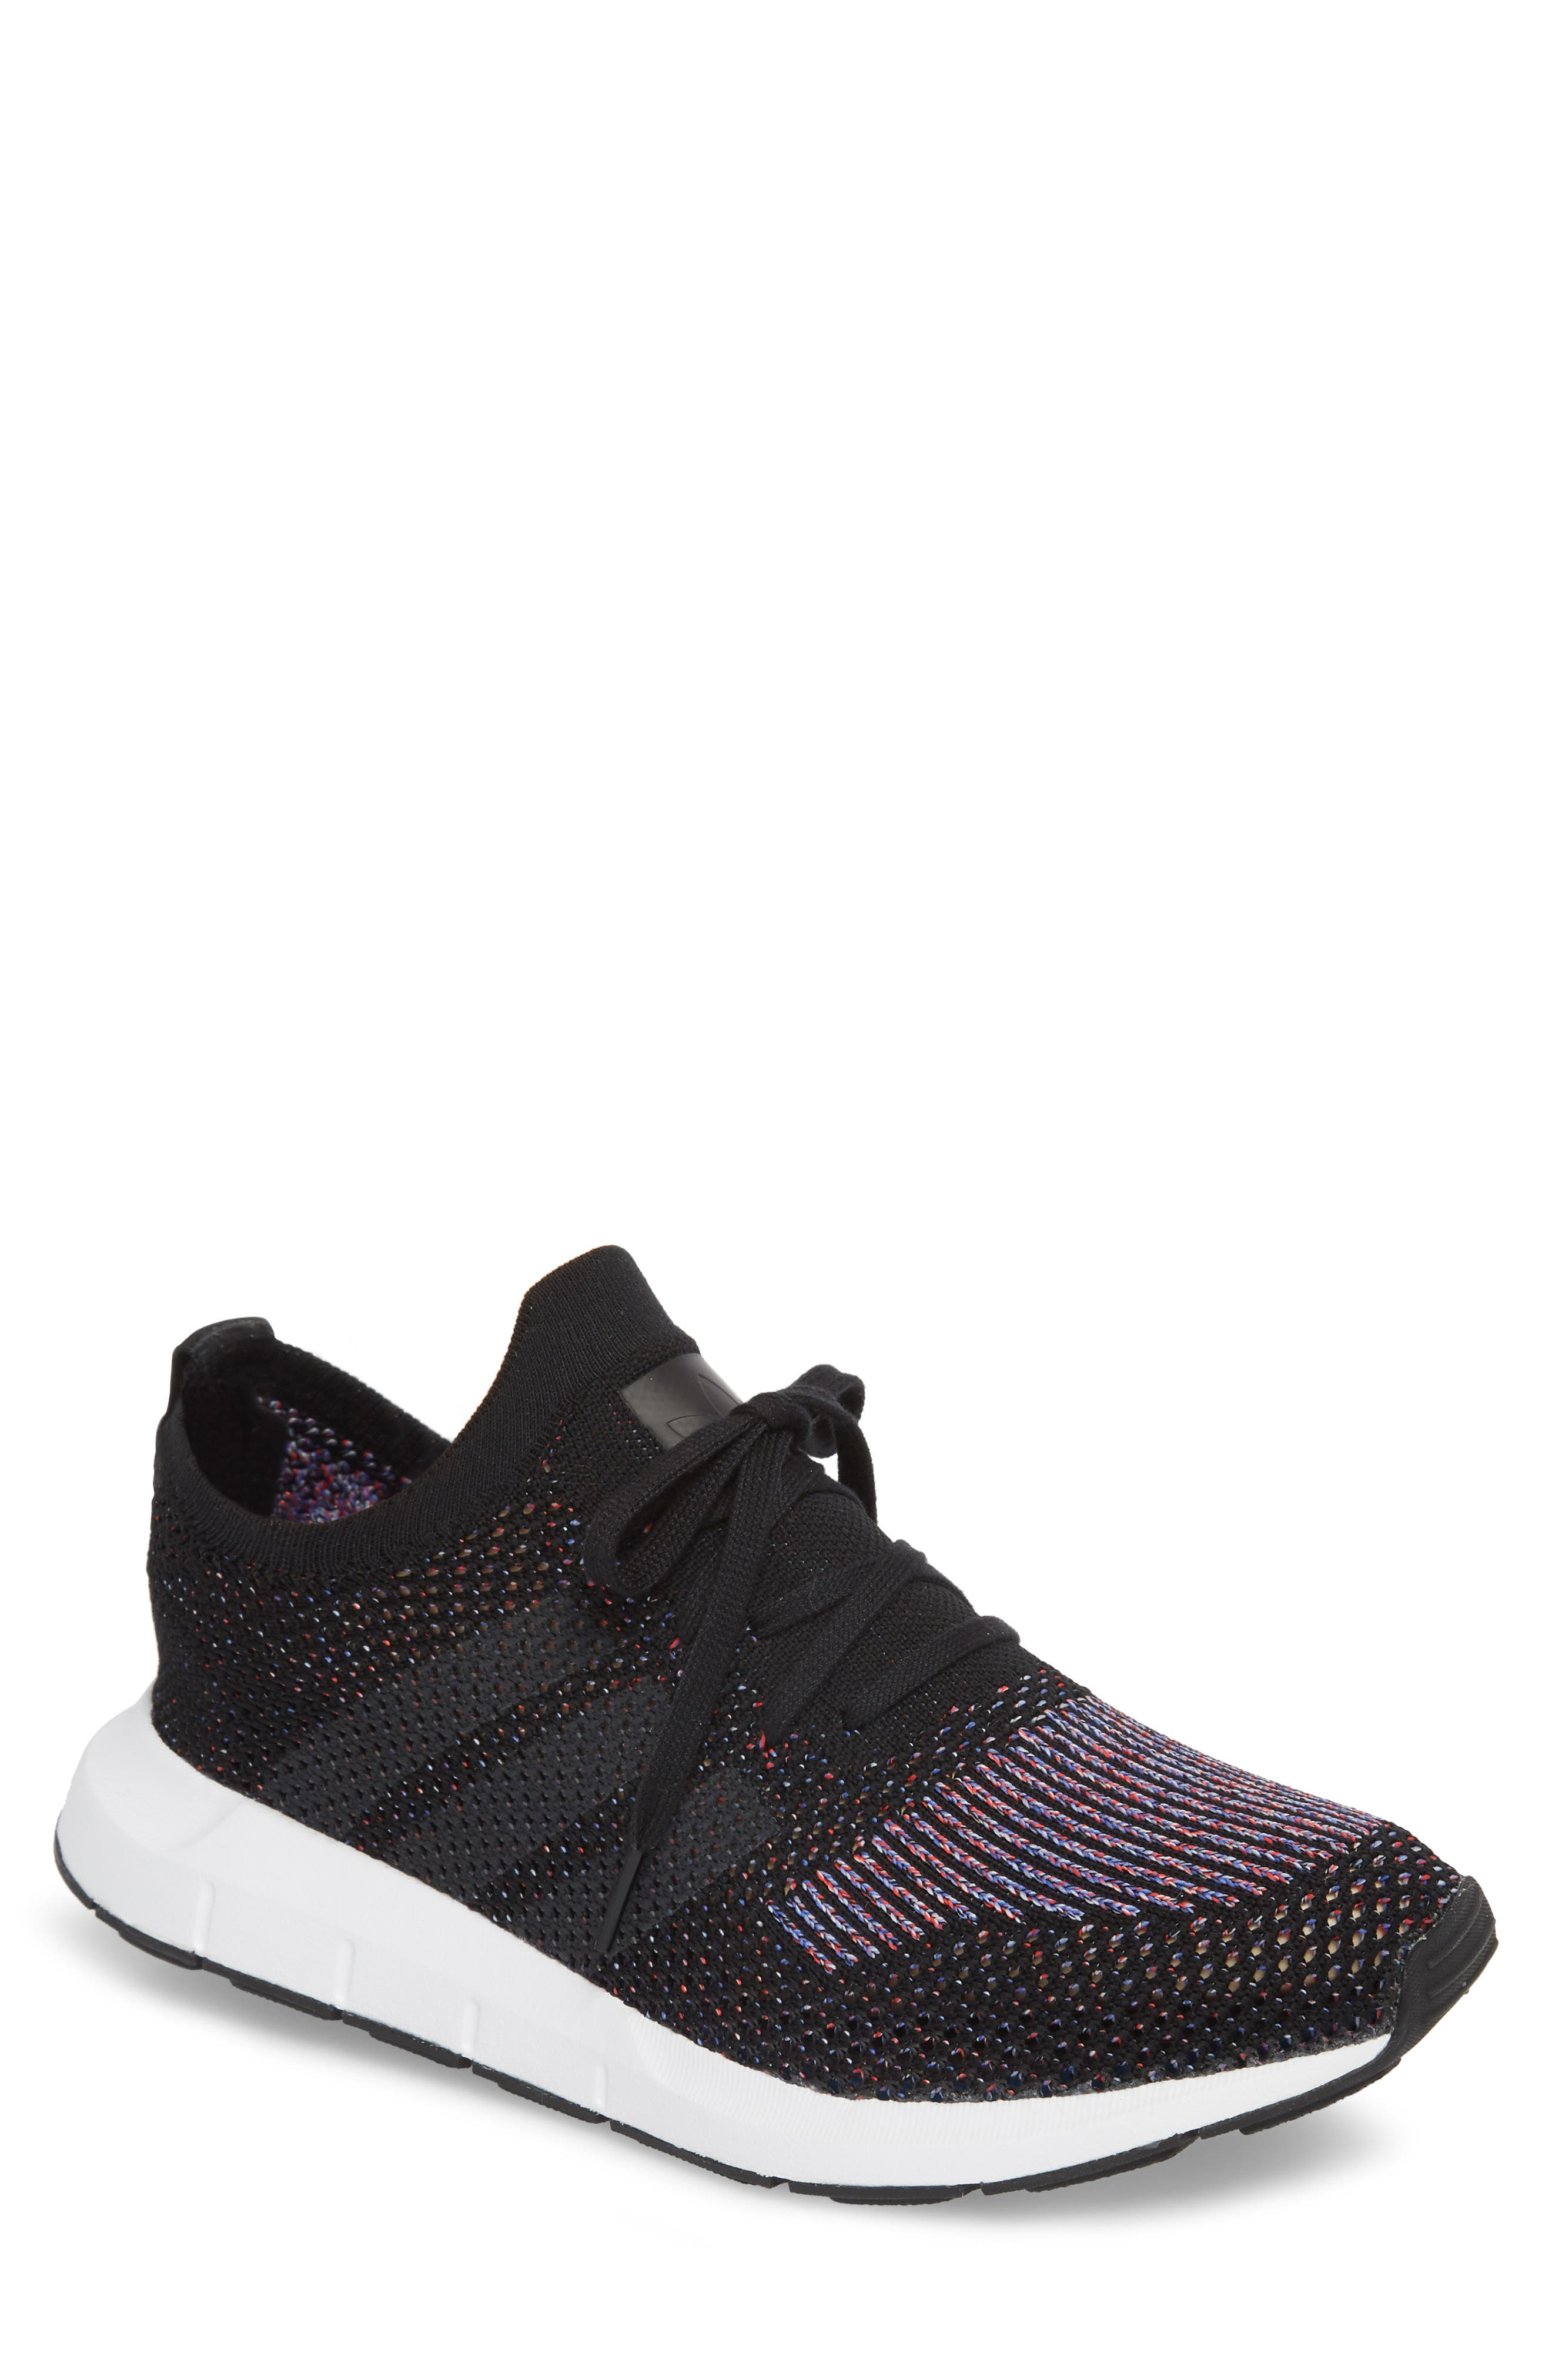 adidas Swift Run Primeknit Training Shoe (Men)